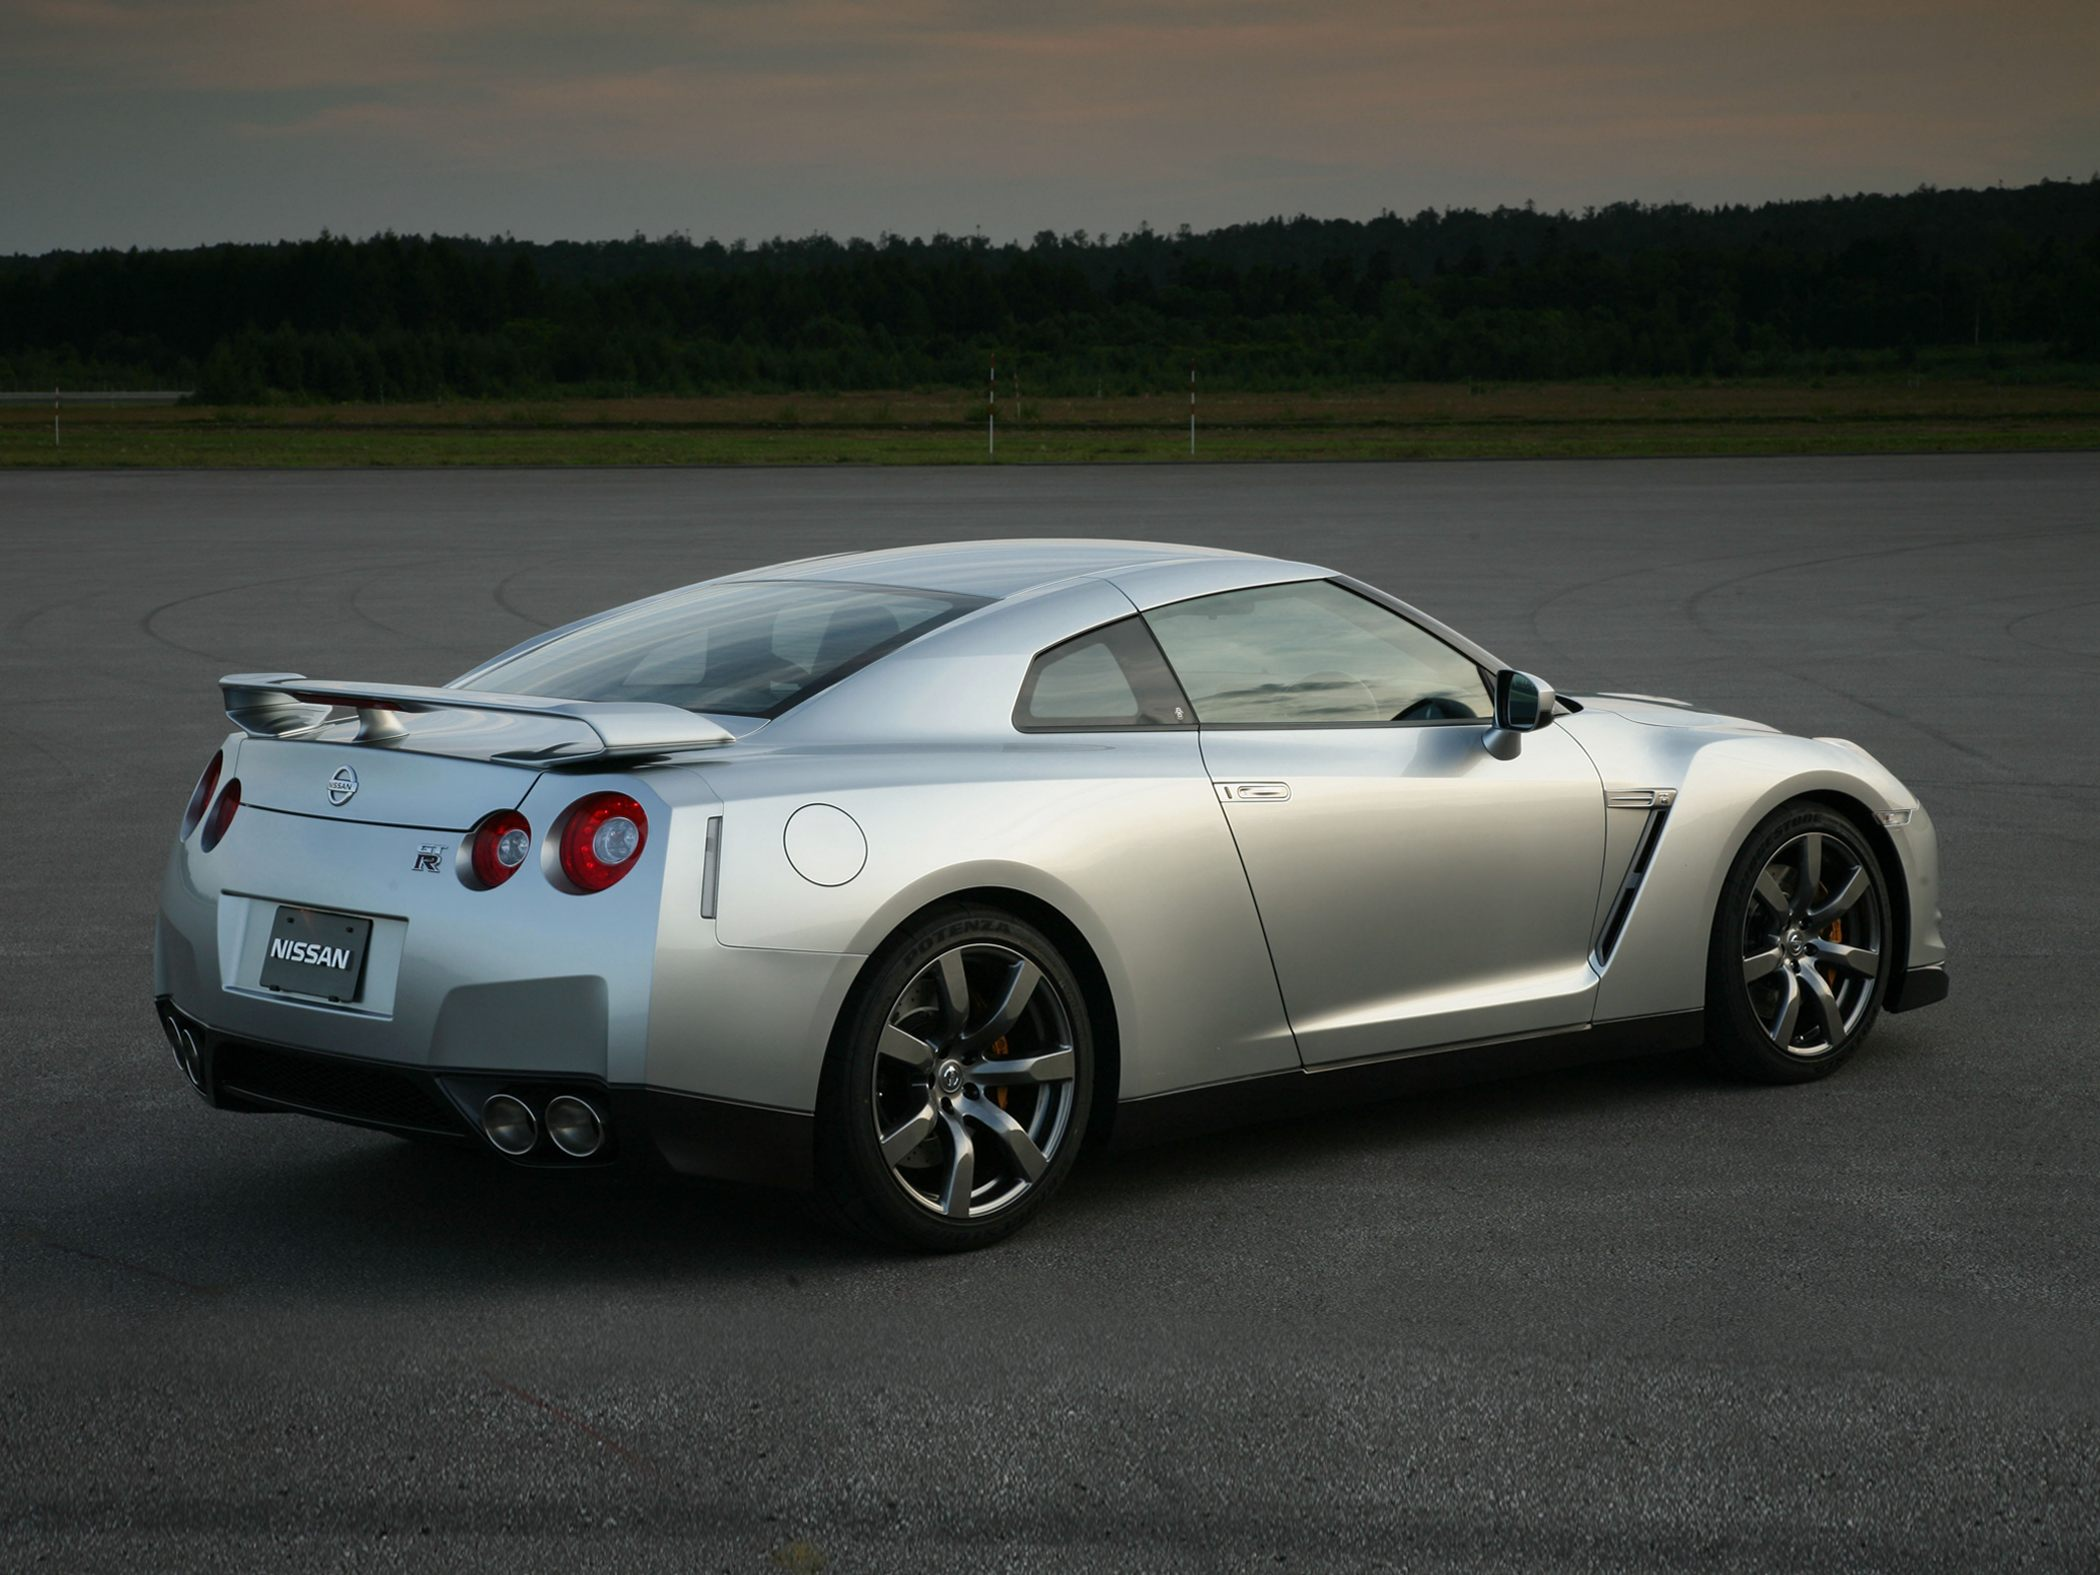 Nissan GT-R I 2007 - 2010 Coupe #2